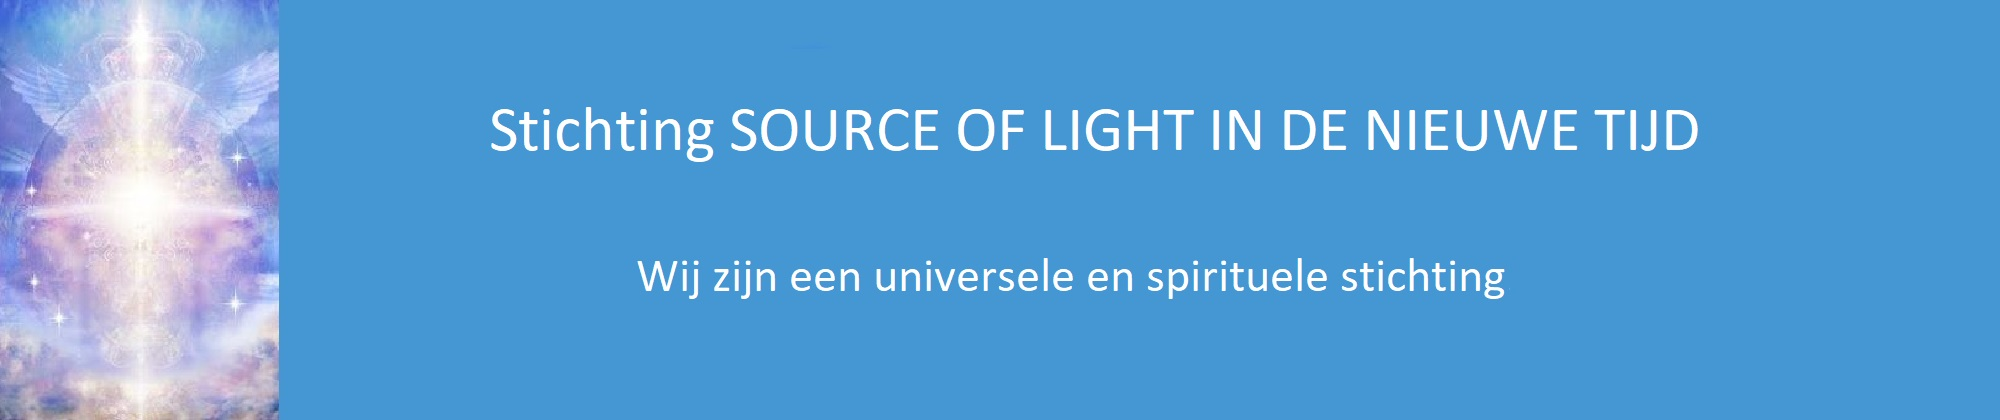 Stichting Source of Light